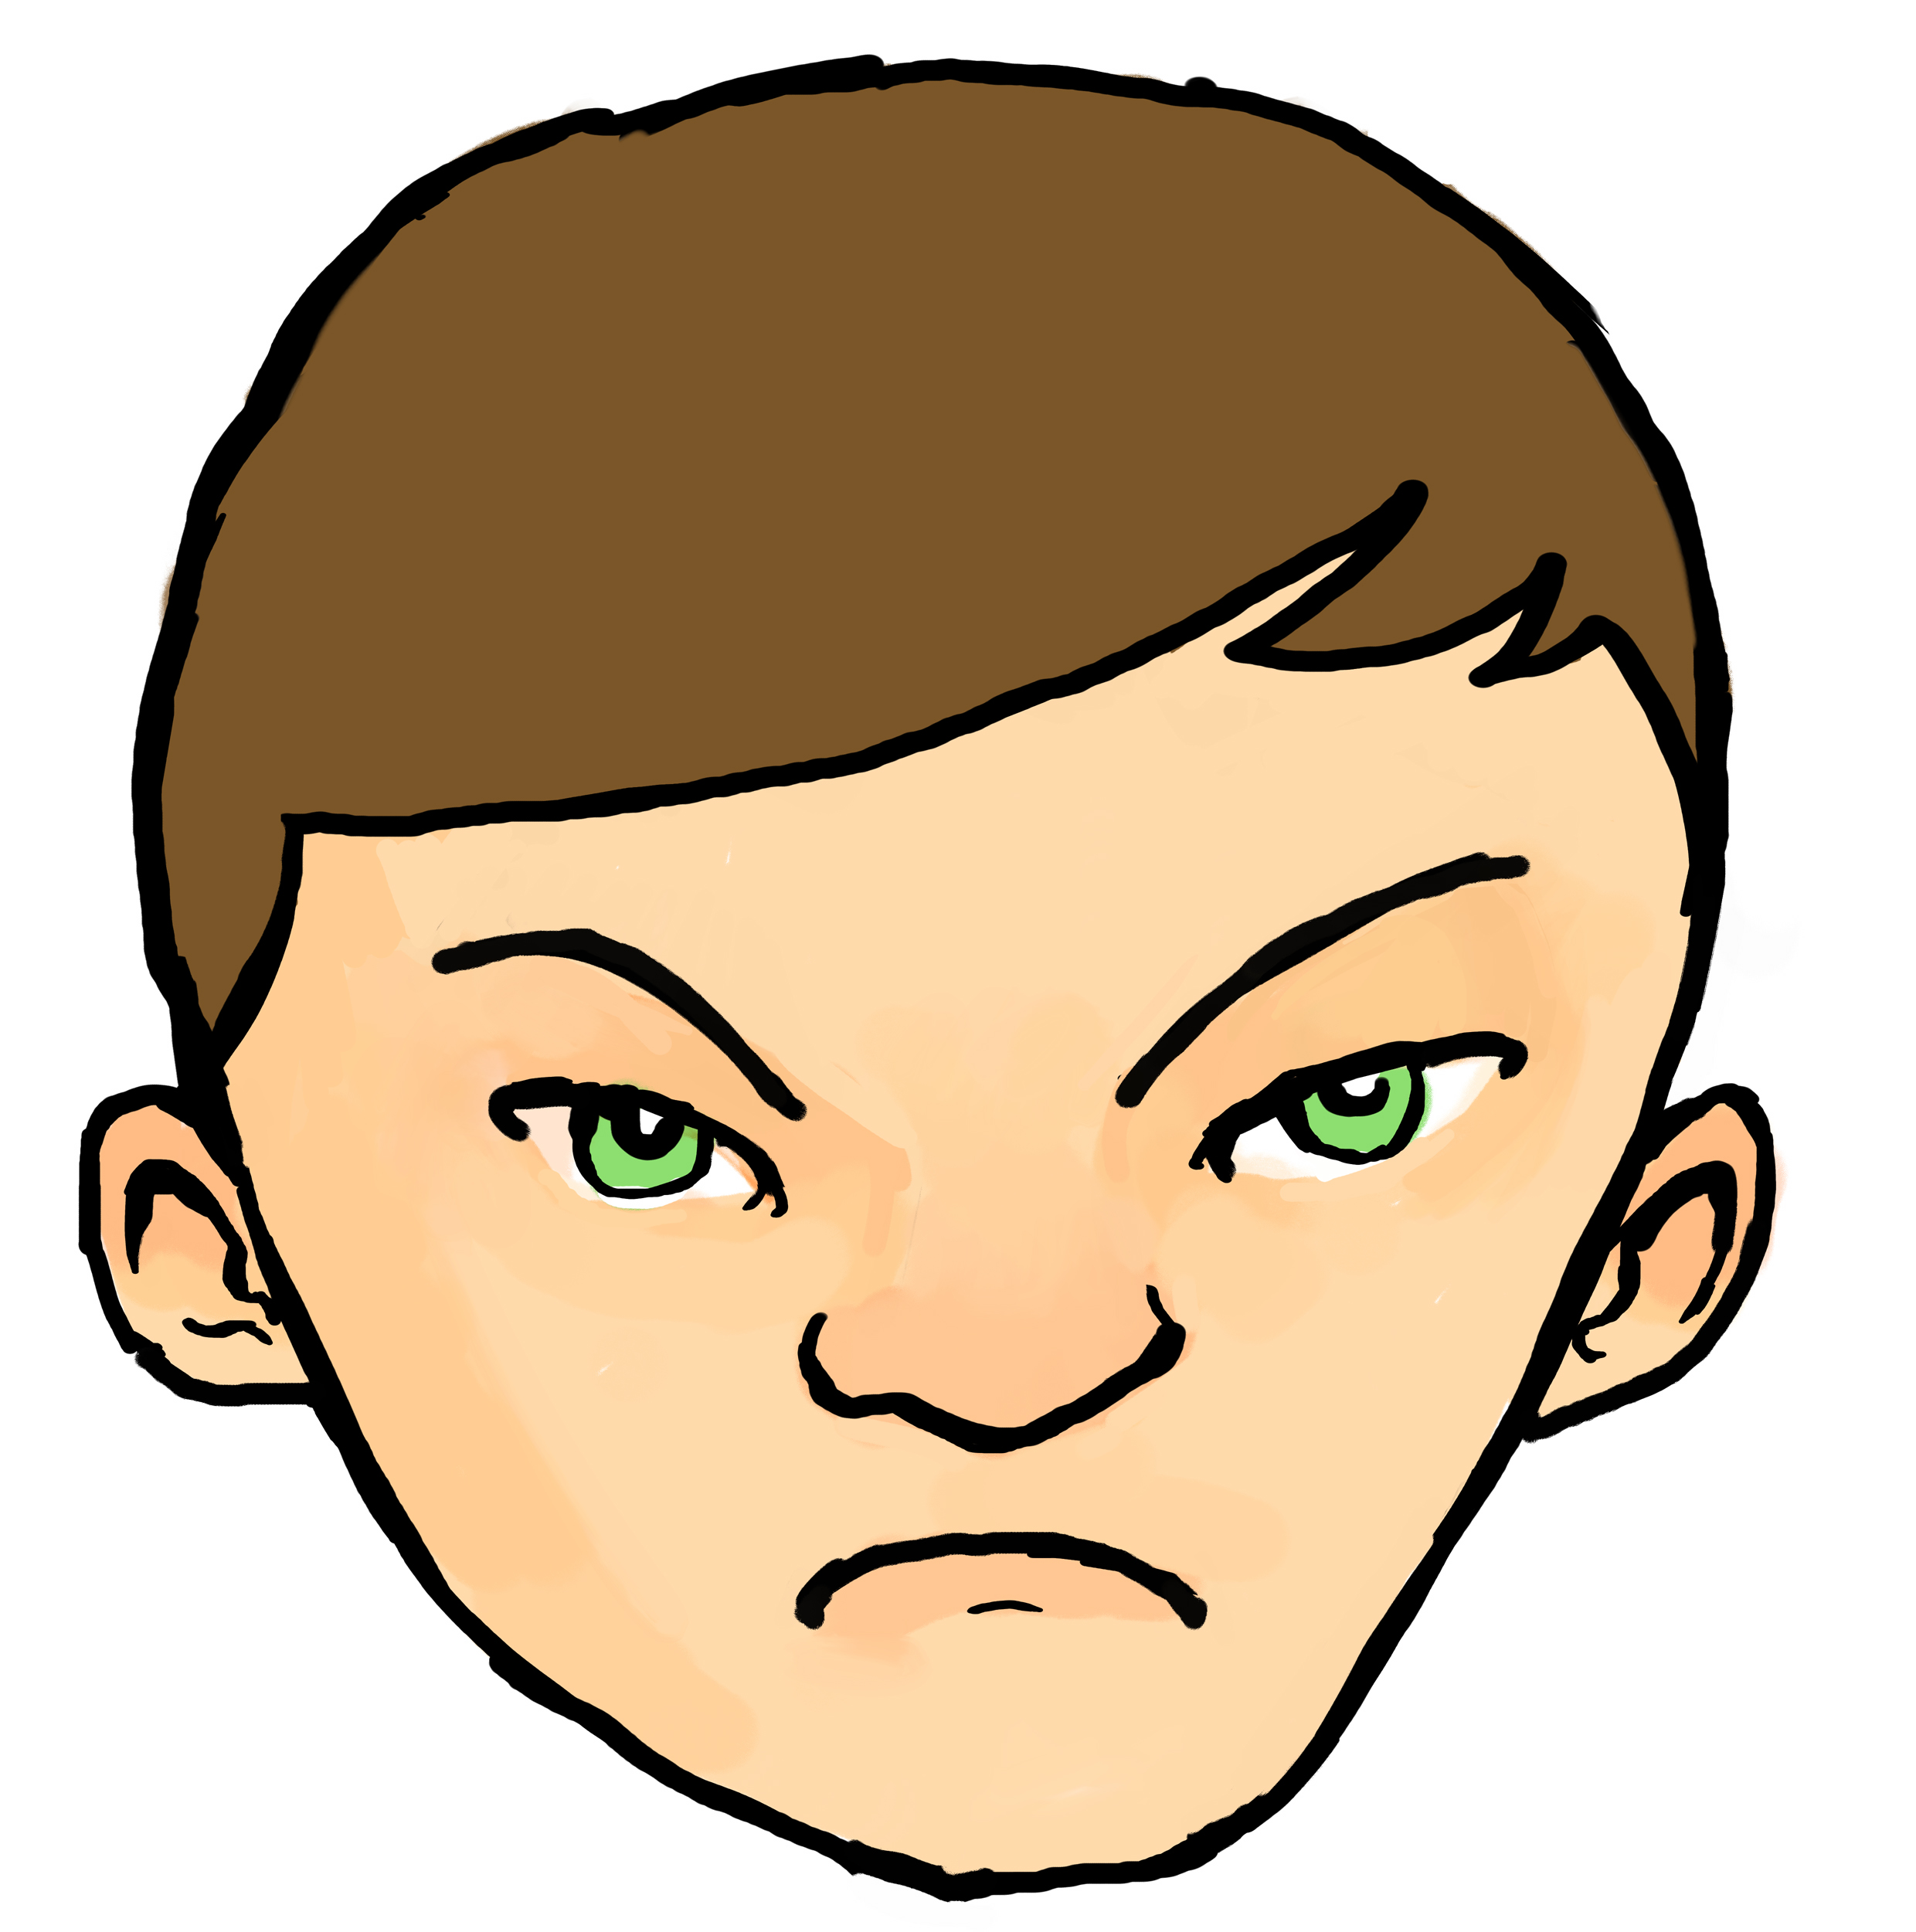 angry boy clipart-angry boy clipart-1